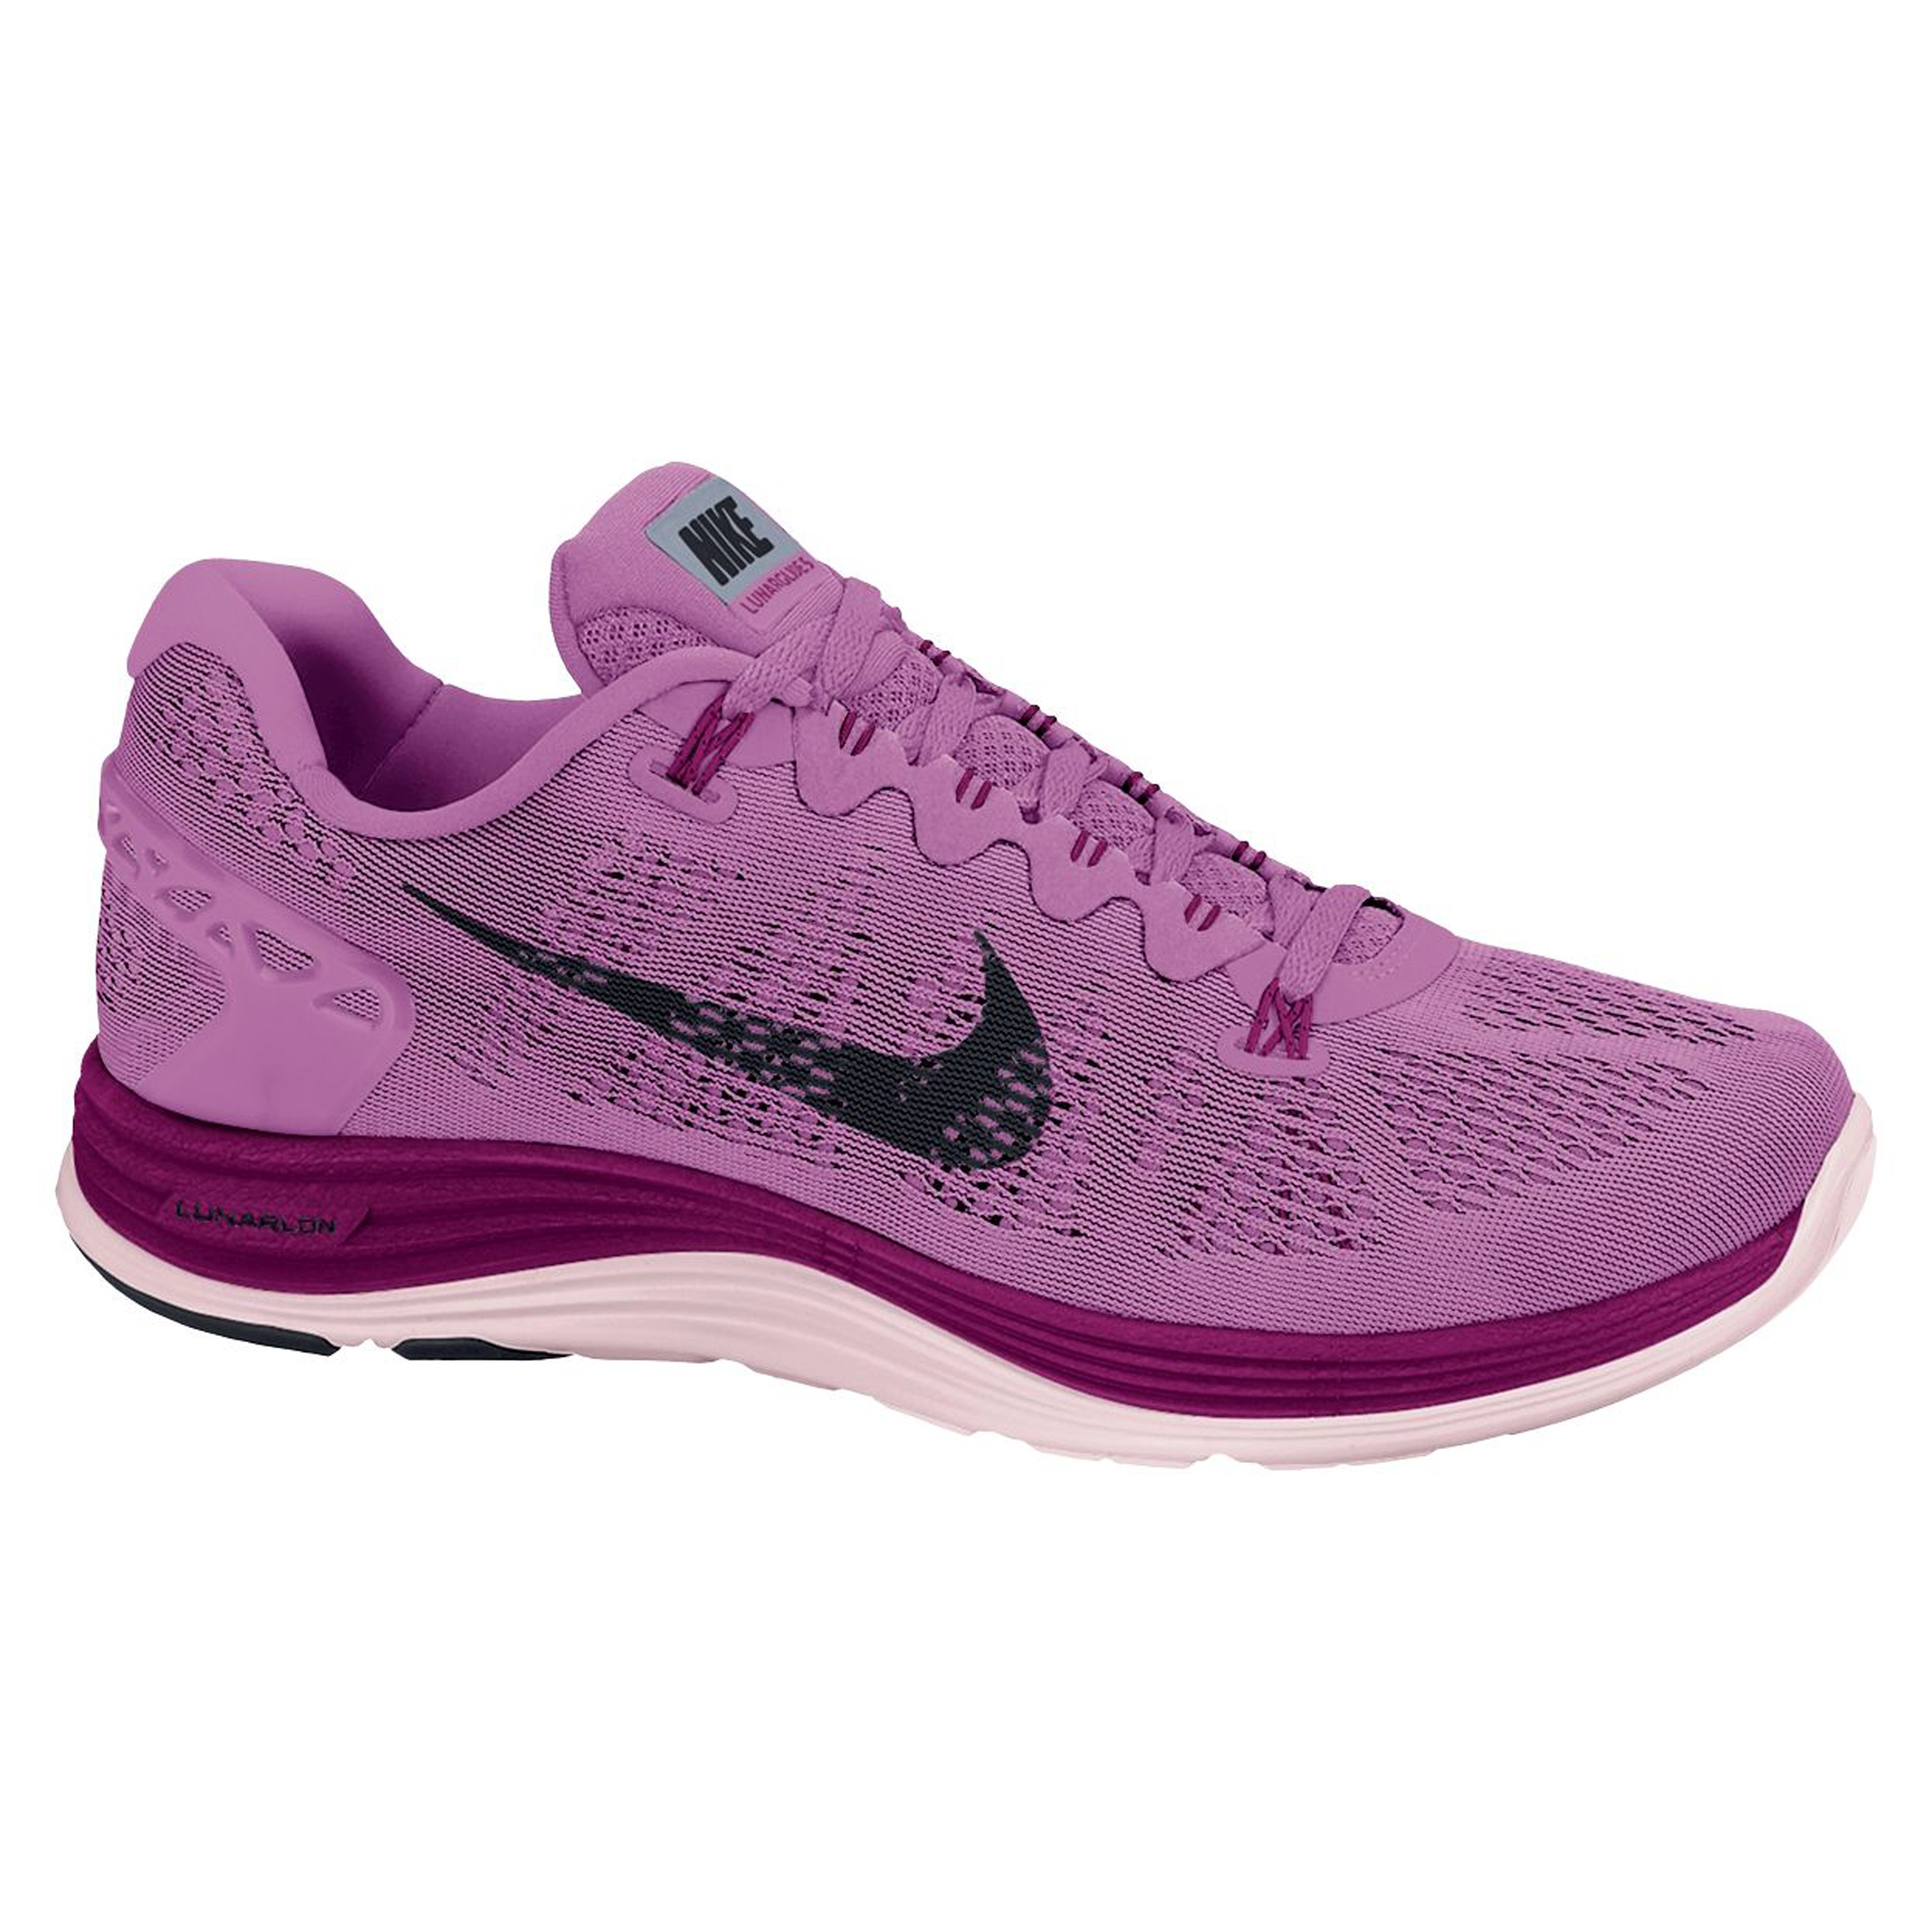 Nike Lunarglide 5 Trainer Womens Red